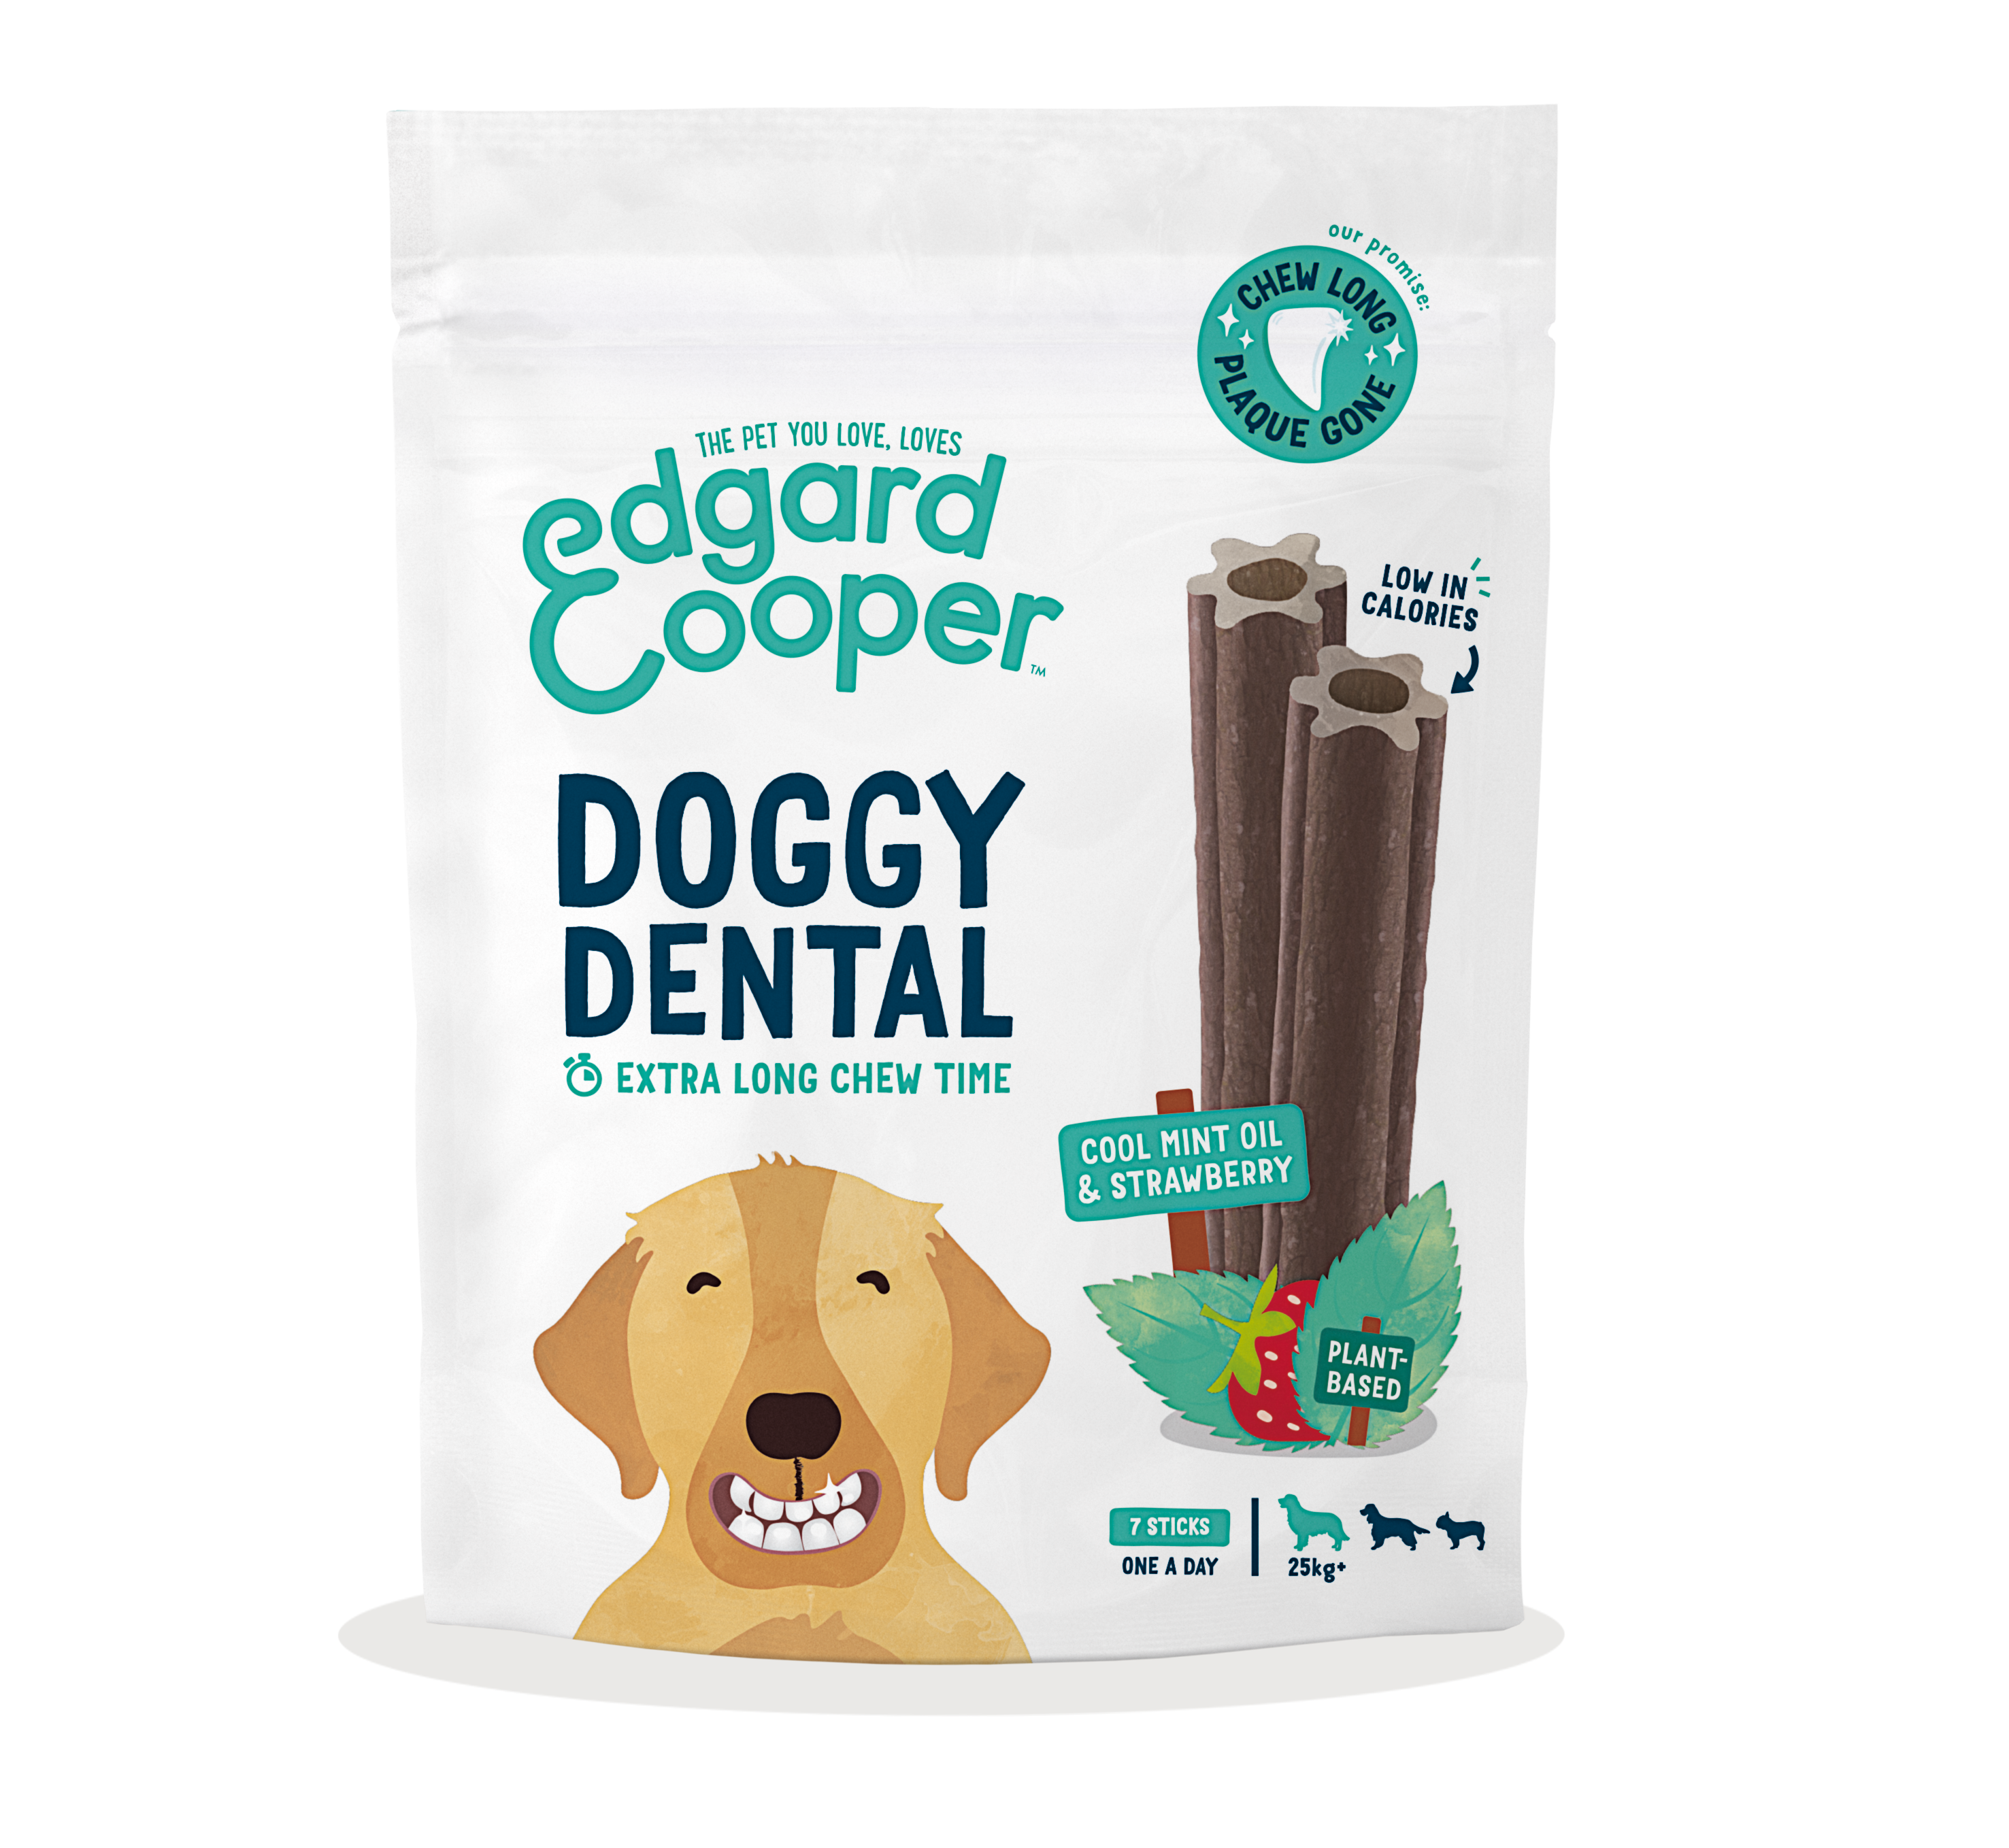 Doggy dental mint & strawberry (Optional Sizes)